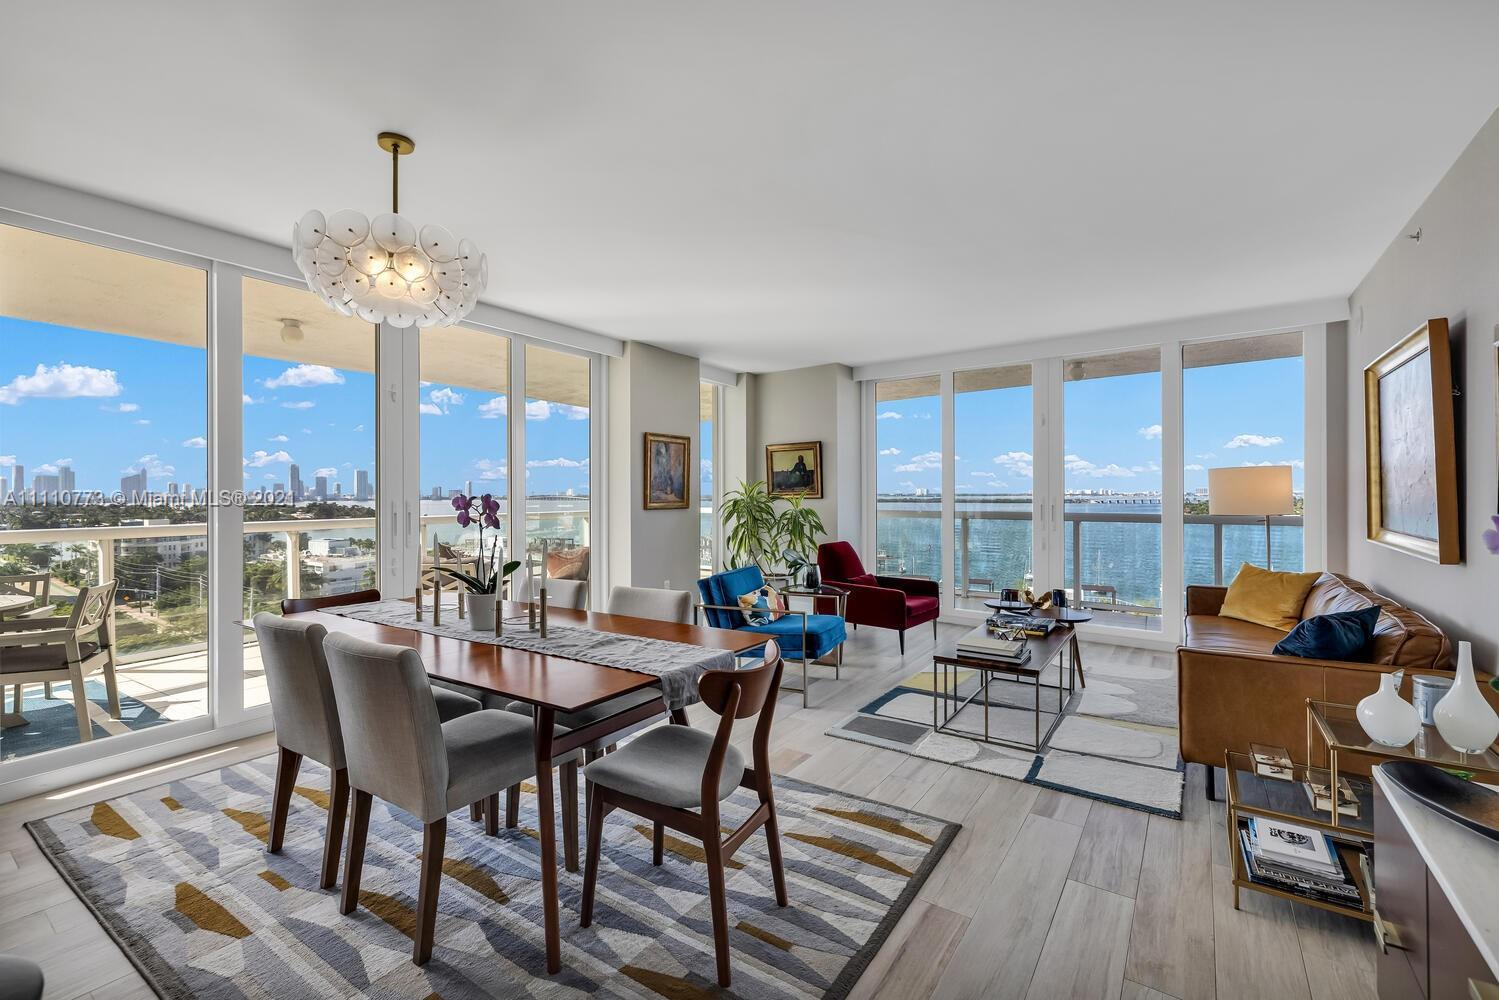 Rarely available 01 line ( considered to be the best line) corner 2 bed / 2 bath unit.  1,477 sq. ft